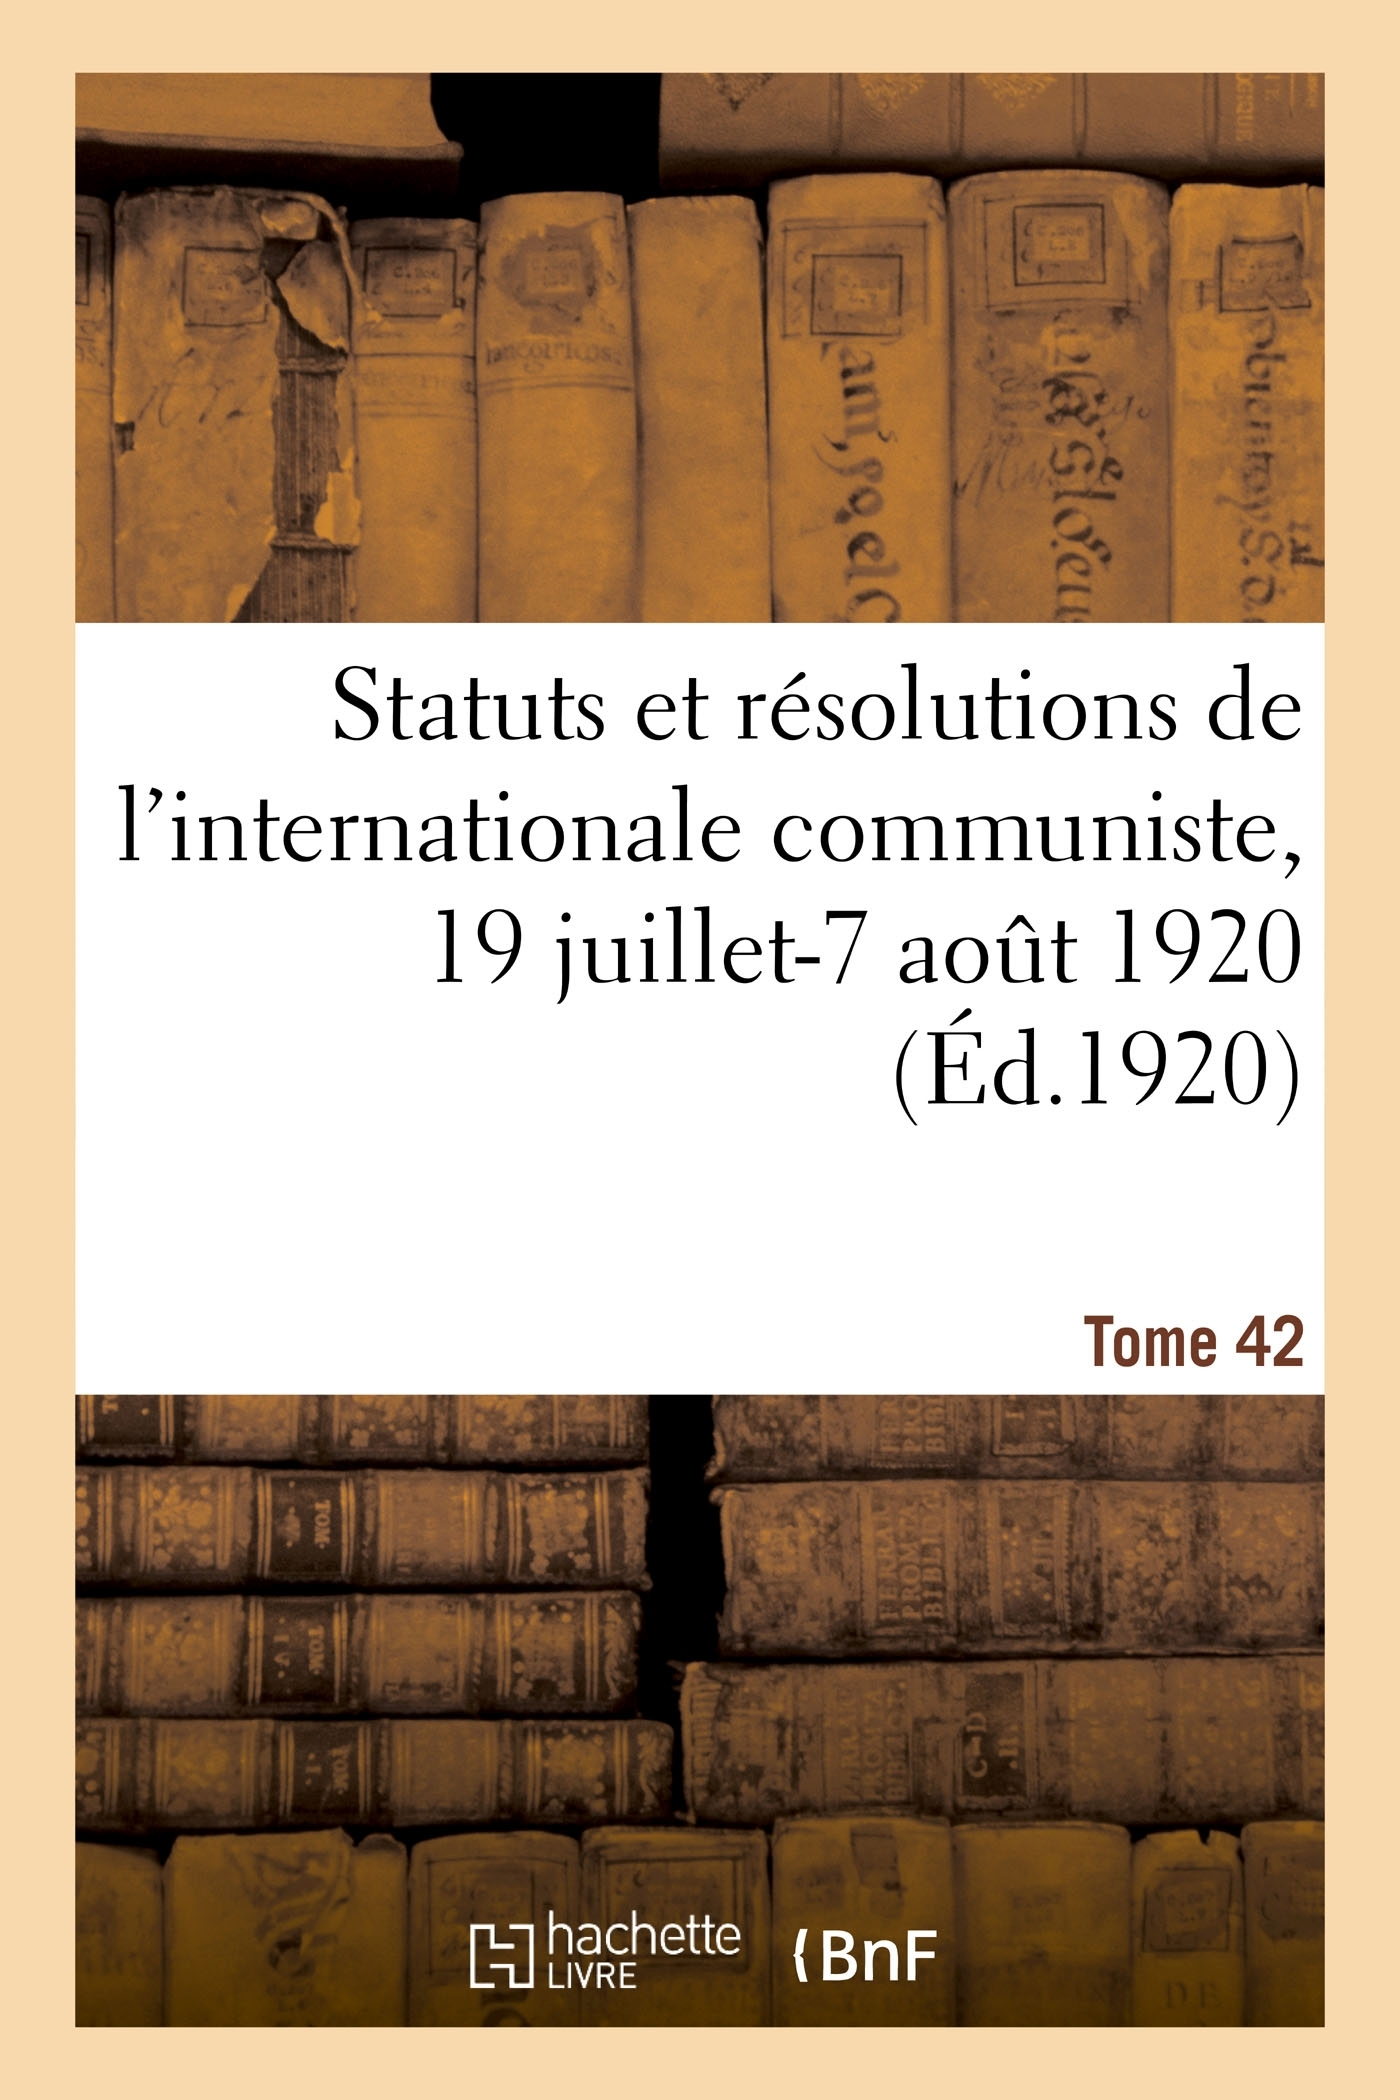 STATUTS ET RESOLUTIONS DE L'INTERNATIONALE COMMUNISTE ADOPTES PAR LE 2E CONGRES DE L'INTERNATIONALE